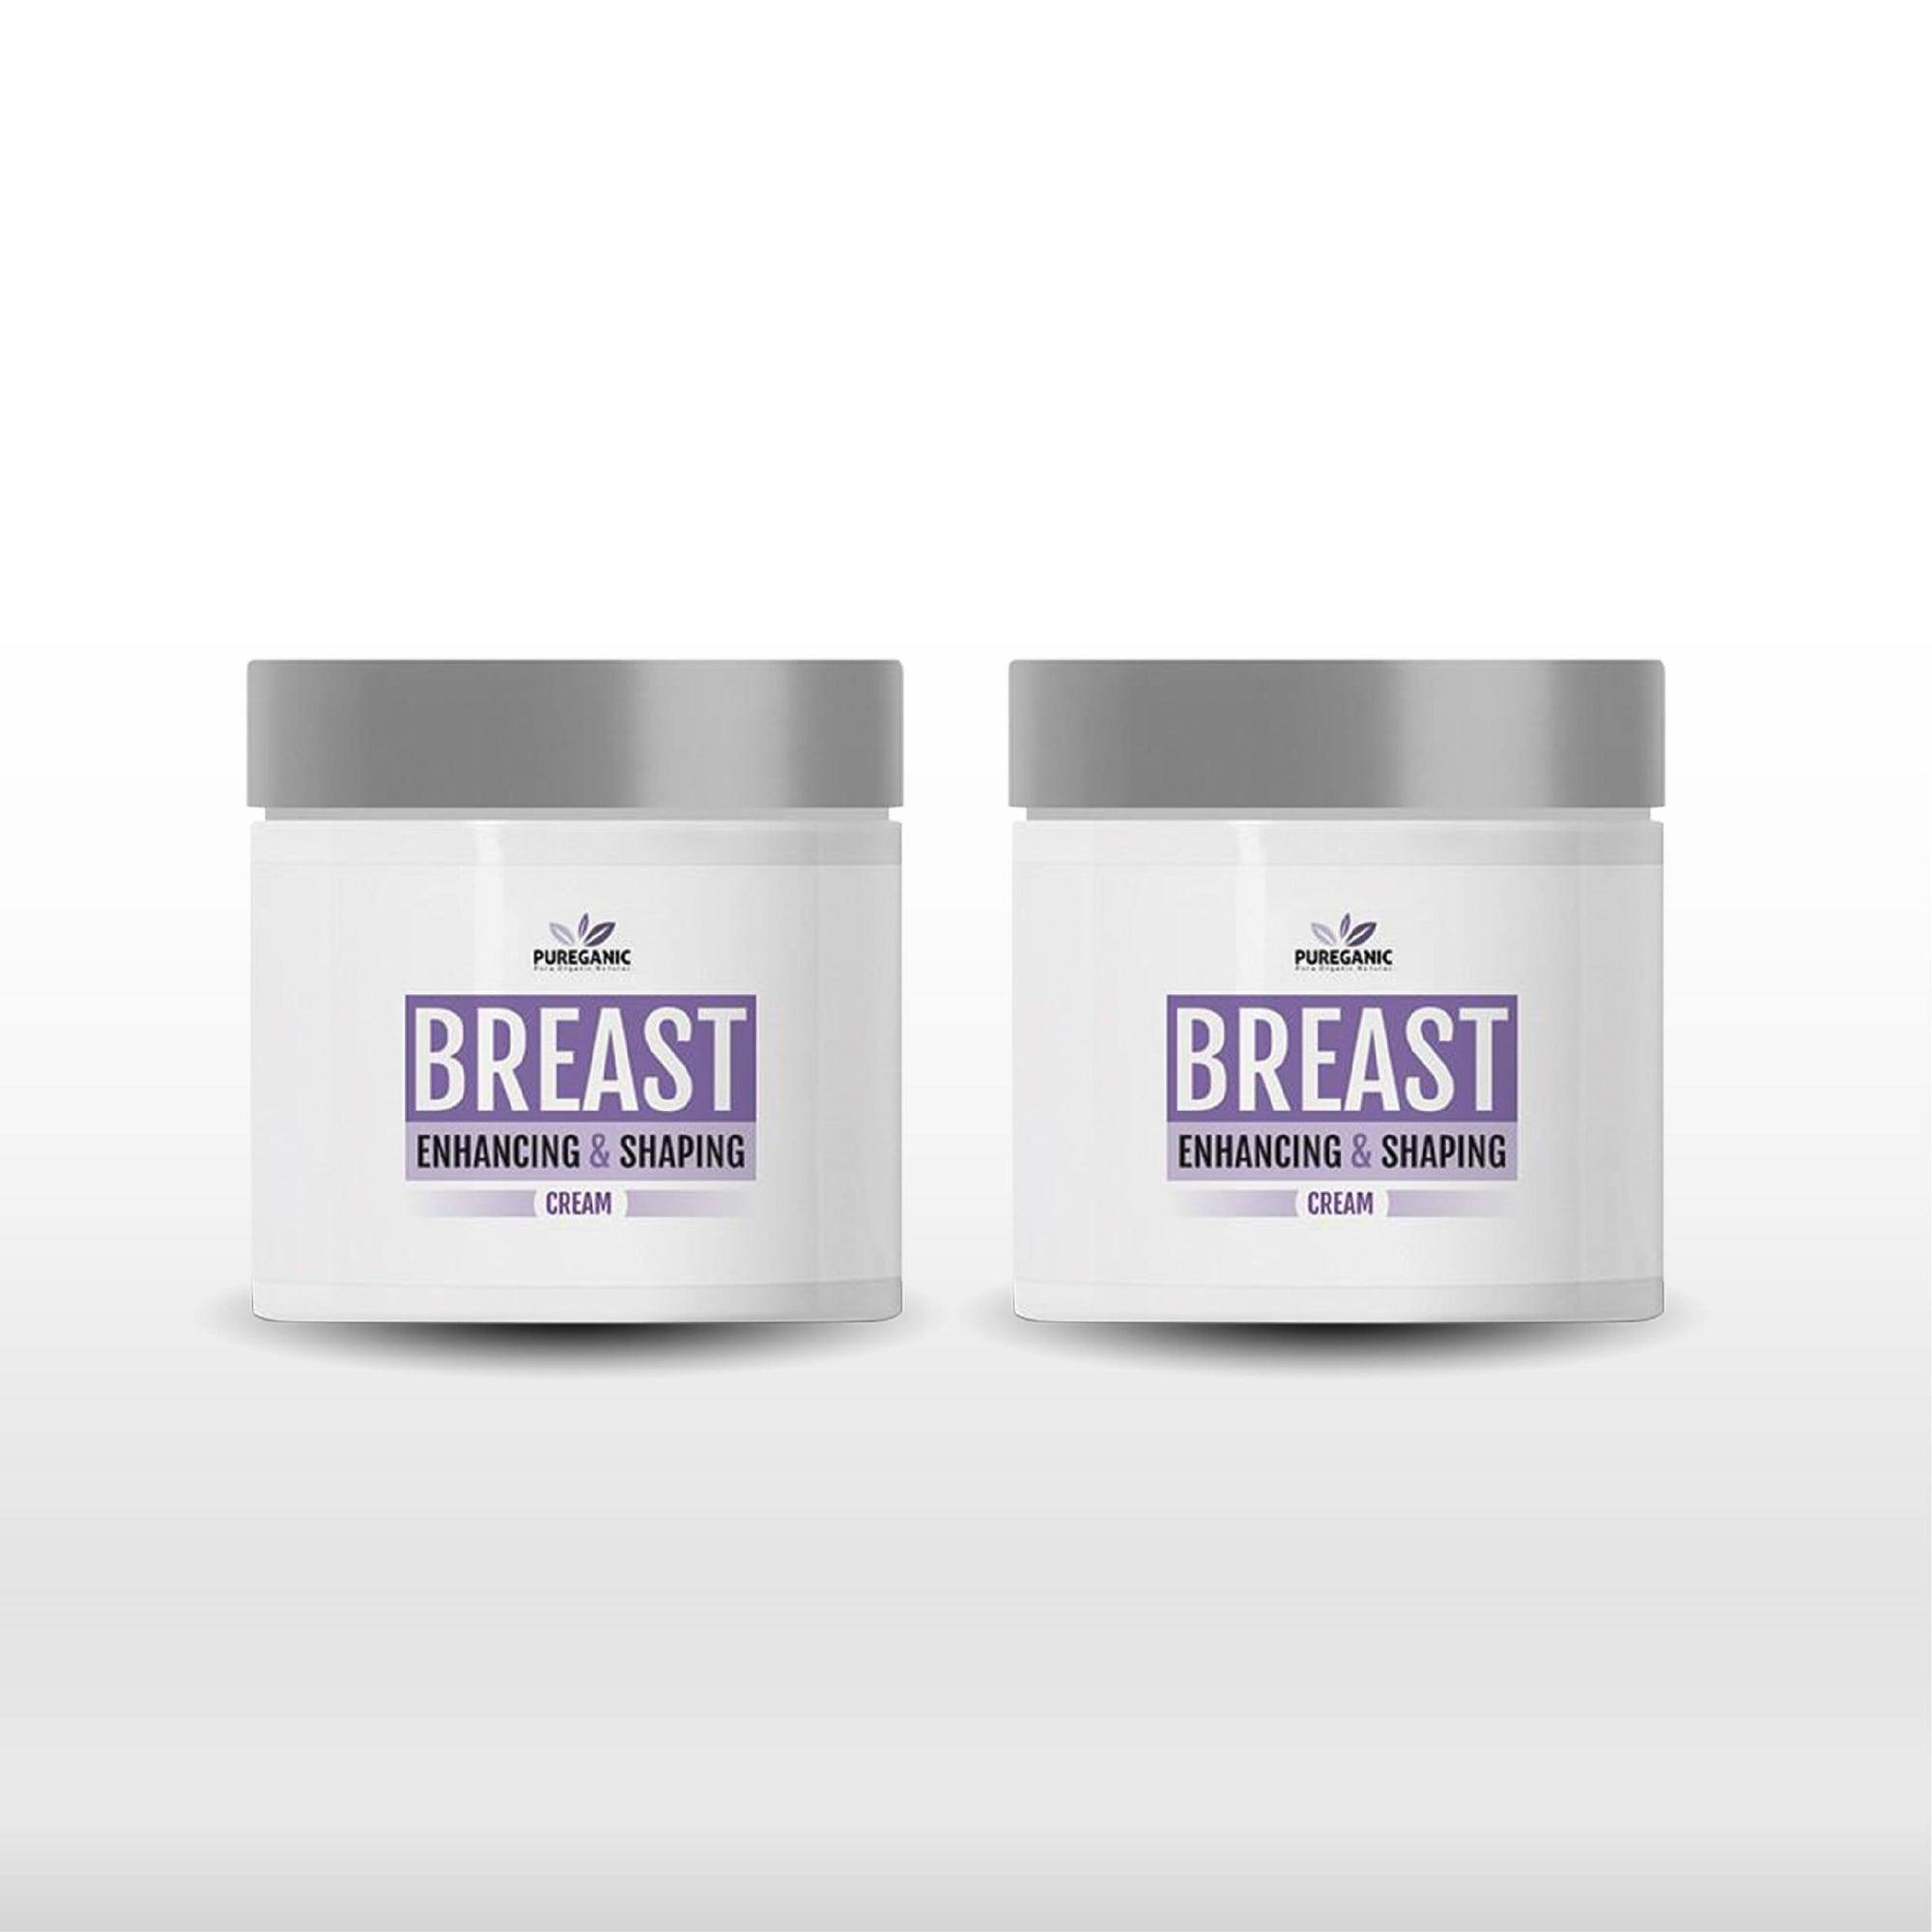 Pureganic Breast Enhancing Cream - 2 Pack